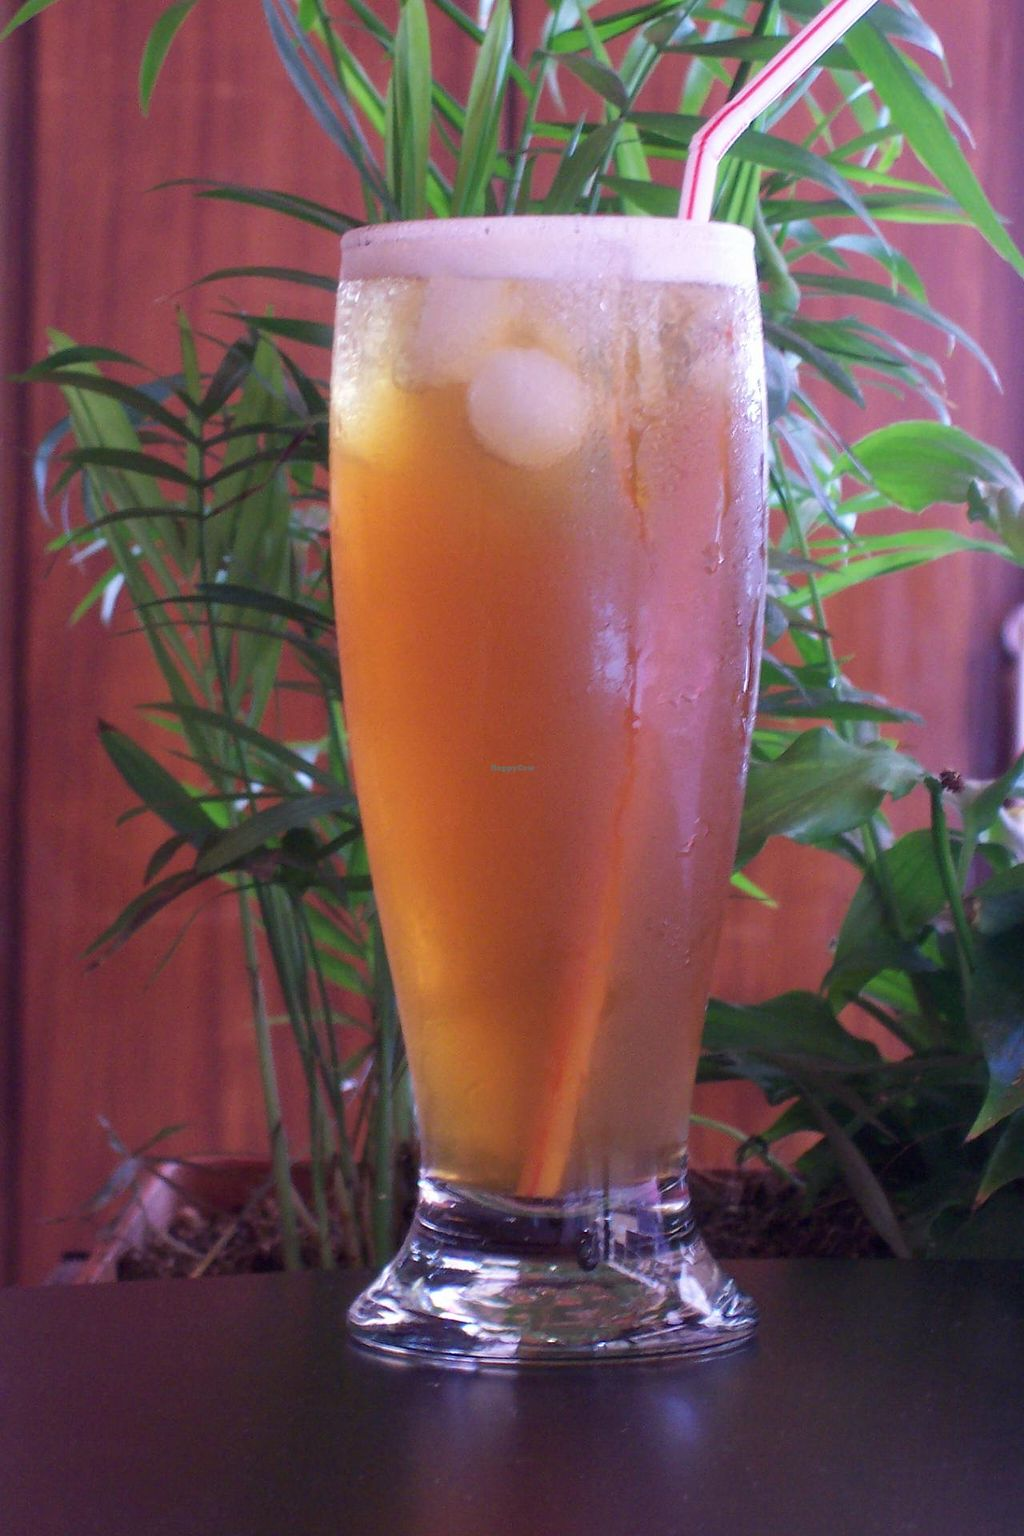 """Photo of Cafe y te Pacifico  by <a href=""""/members/profile/schong2"""">schong2</a> <br/>cool tea <br/> March 24, 2014  - <a href='/contact/abuse/image/46040/66454'>Report</a>"""